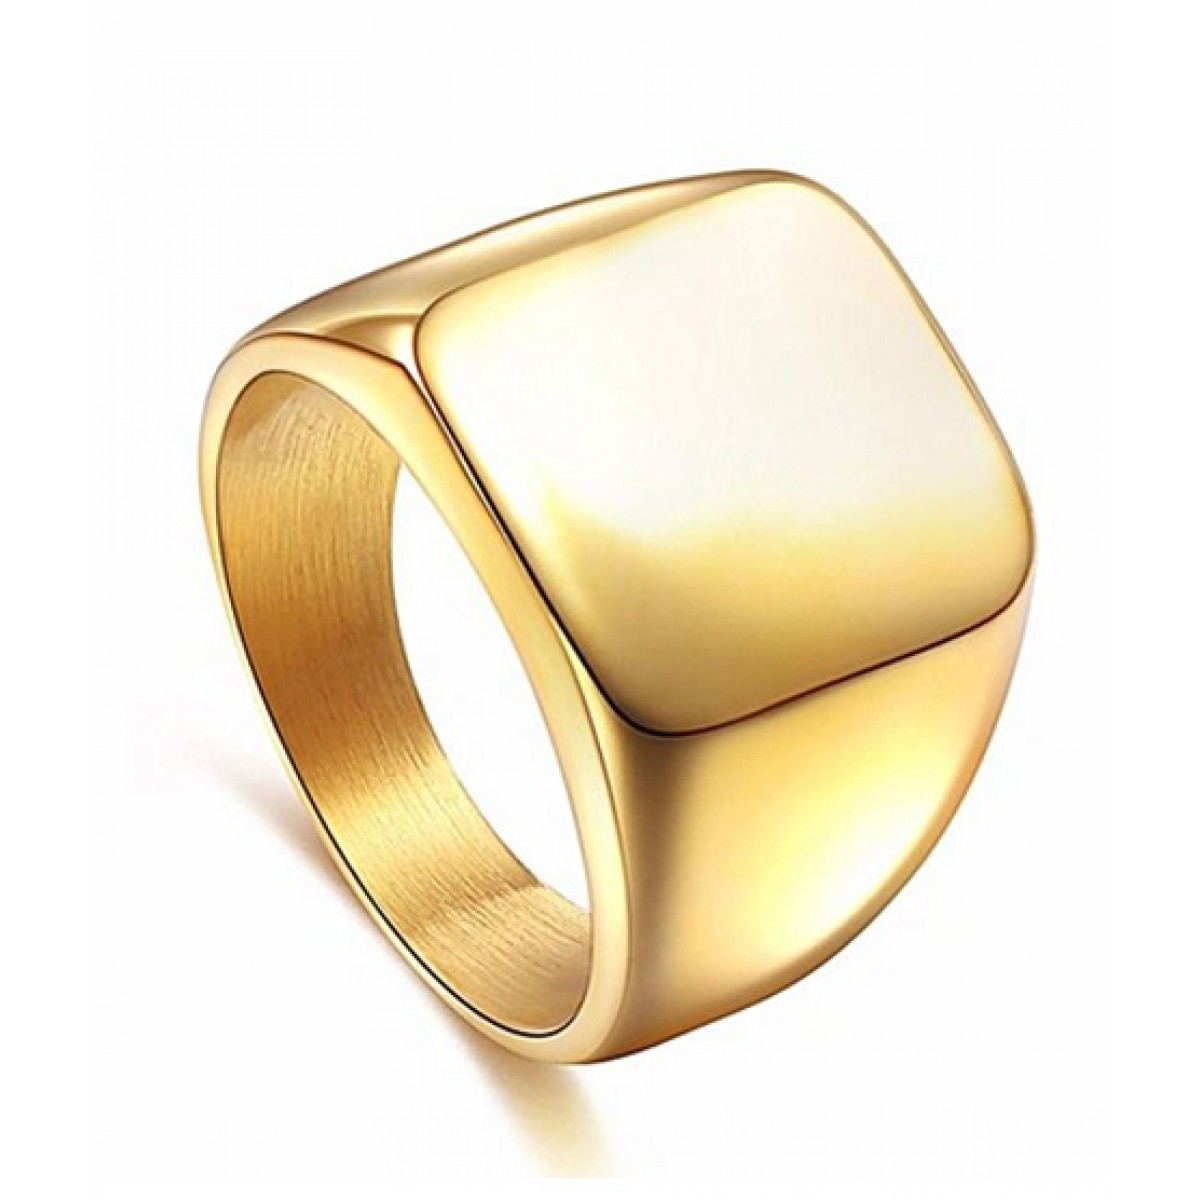 6ad4e92c4 MM Mart Jewellers Steel Gold Ring For Men Price in Pakistan | Buy MM Mart  Jewellers Titanium Steel Gold Ring For Men (1042) | iShopping.pk